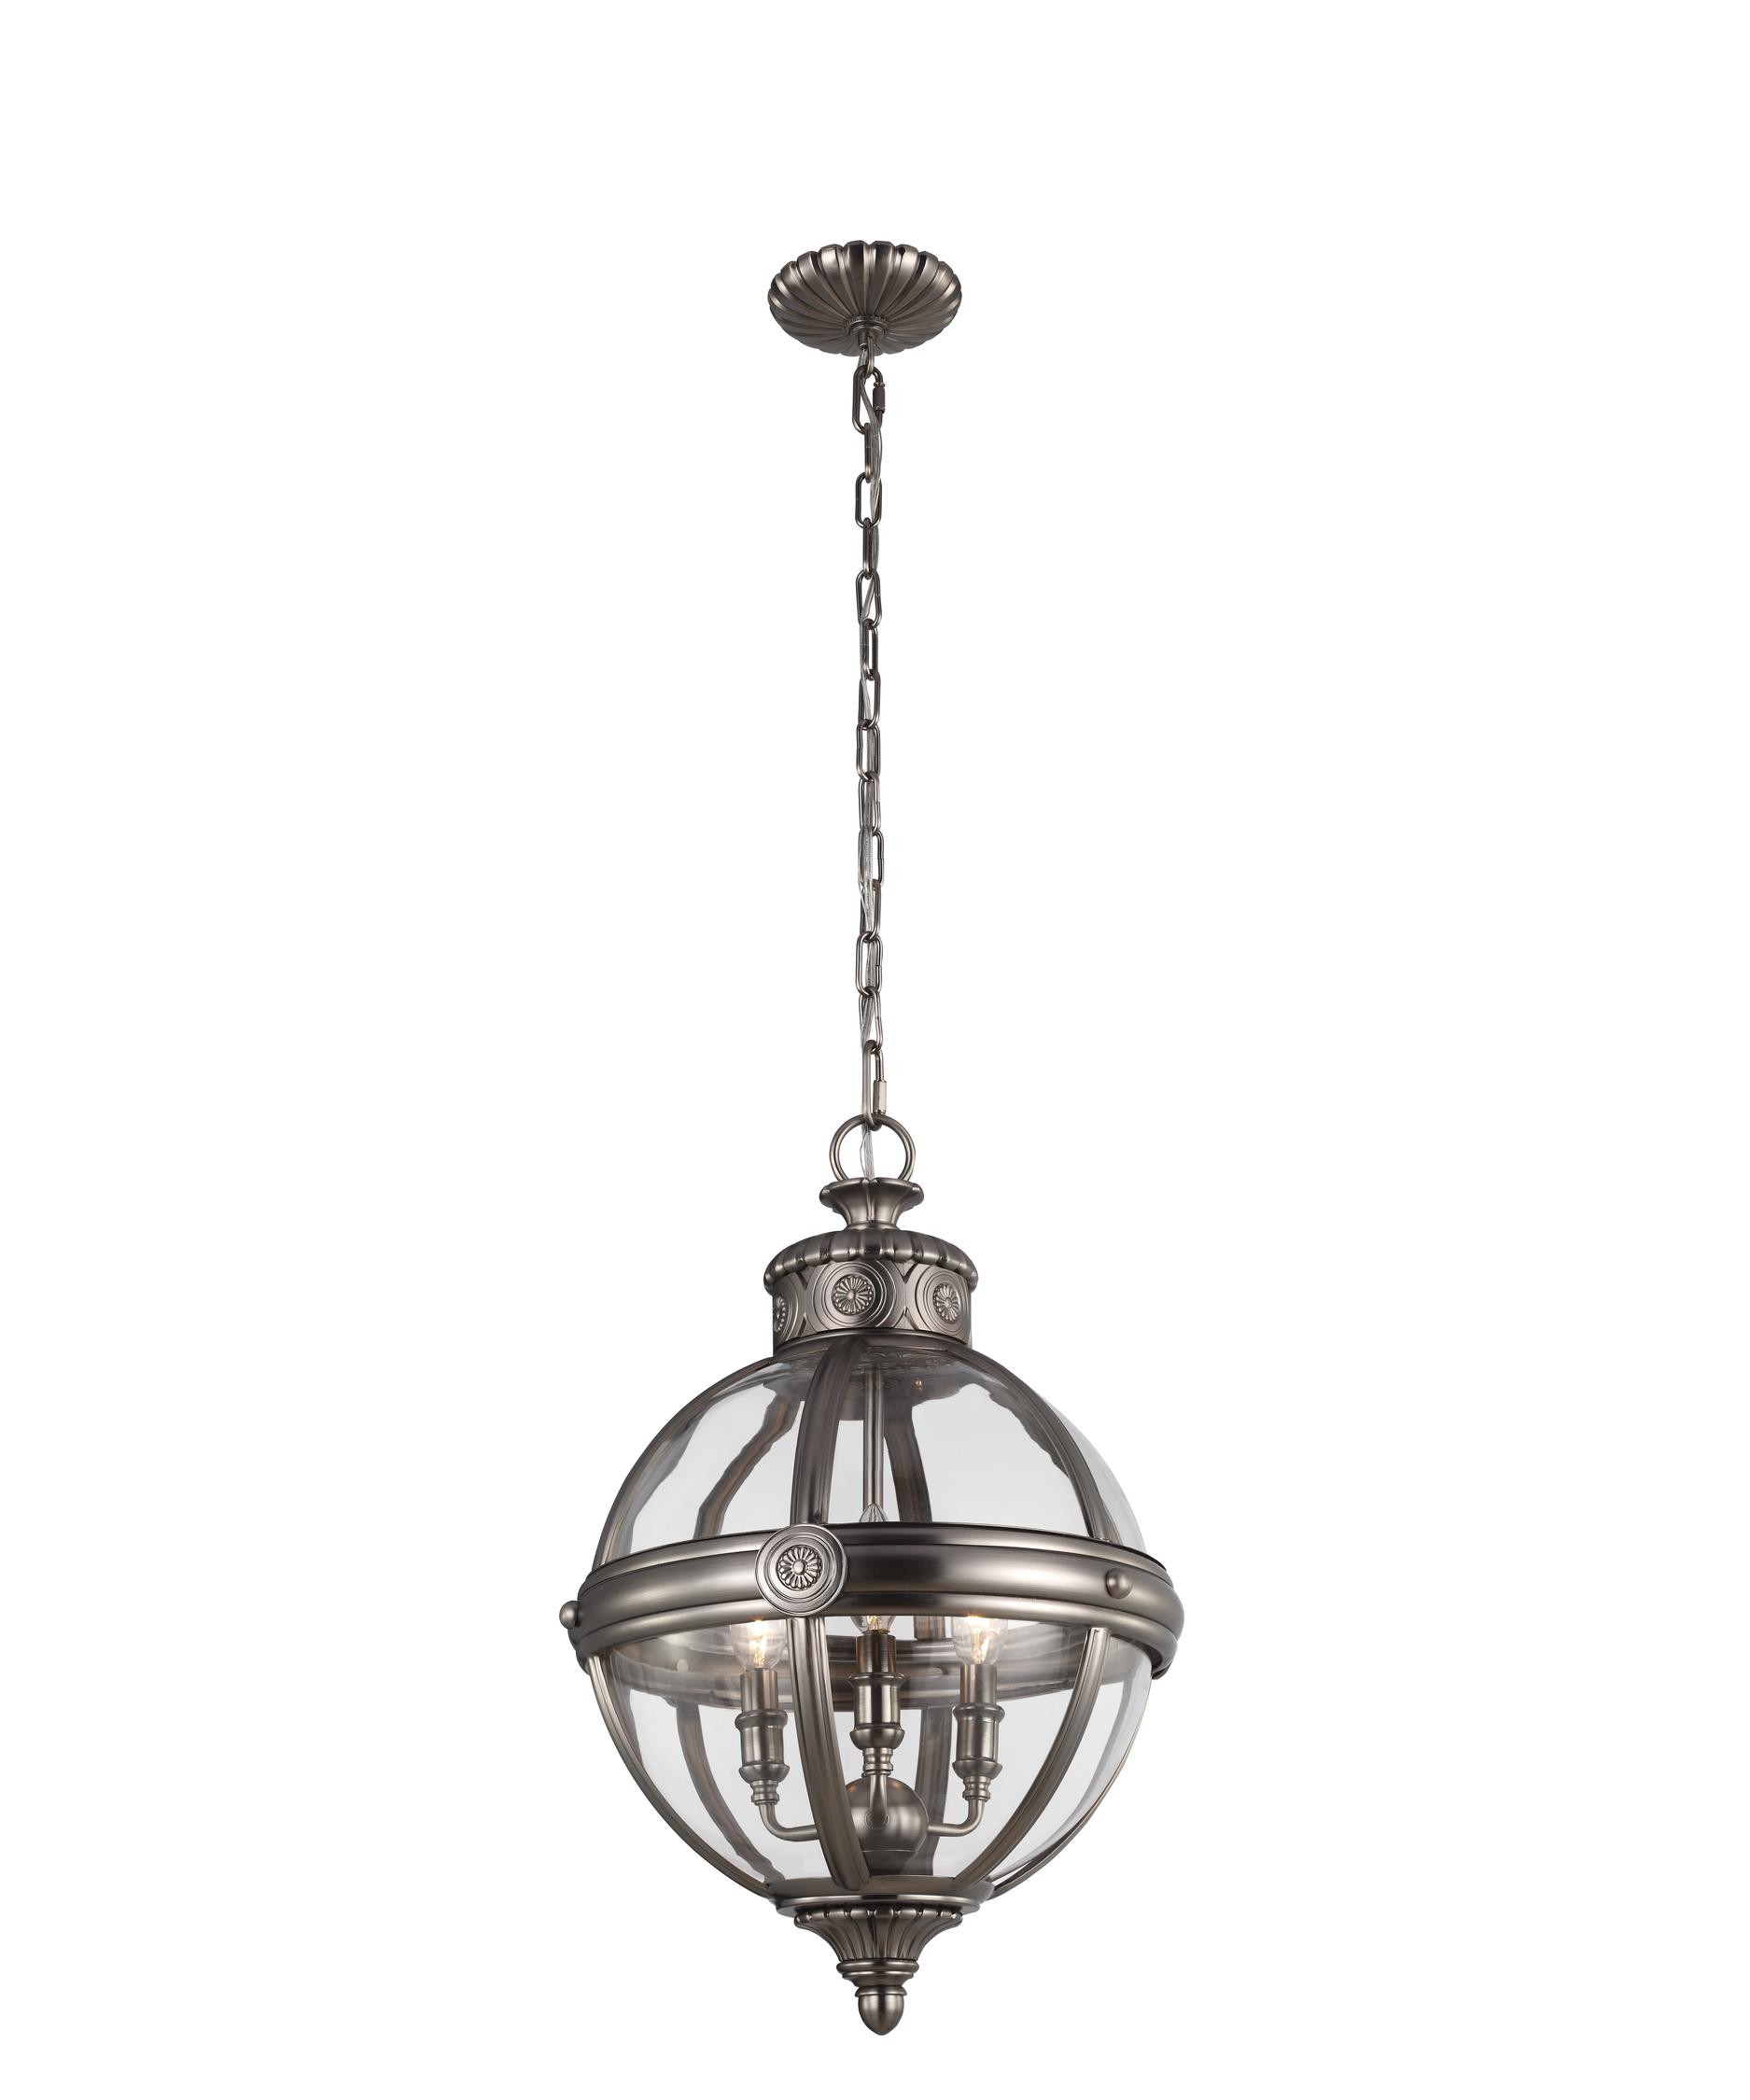 shown in antique nickel finish and clear glass - Feiss Lighting